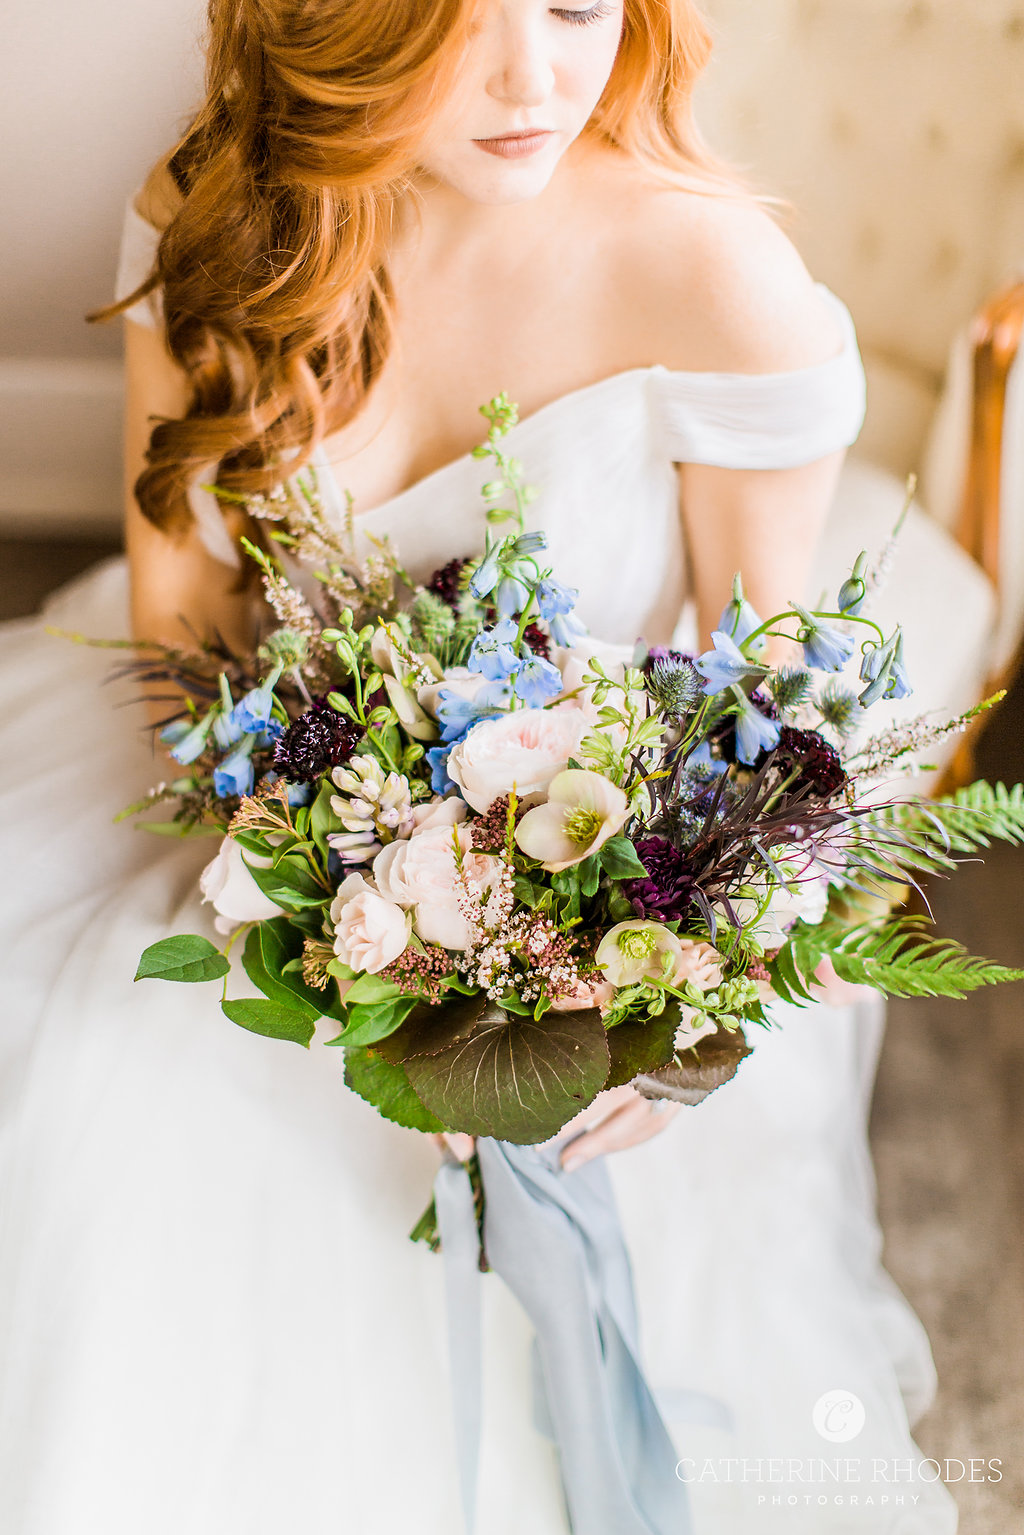 Silver Oaks Chateau Wedding St Louis Missouri Wedding, Floral Design by Sugarberry Blooms